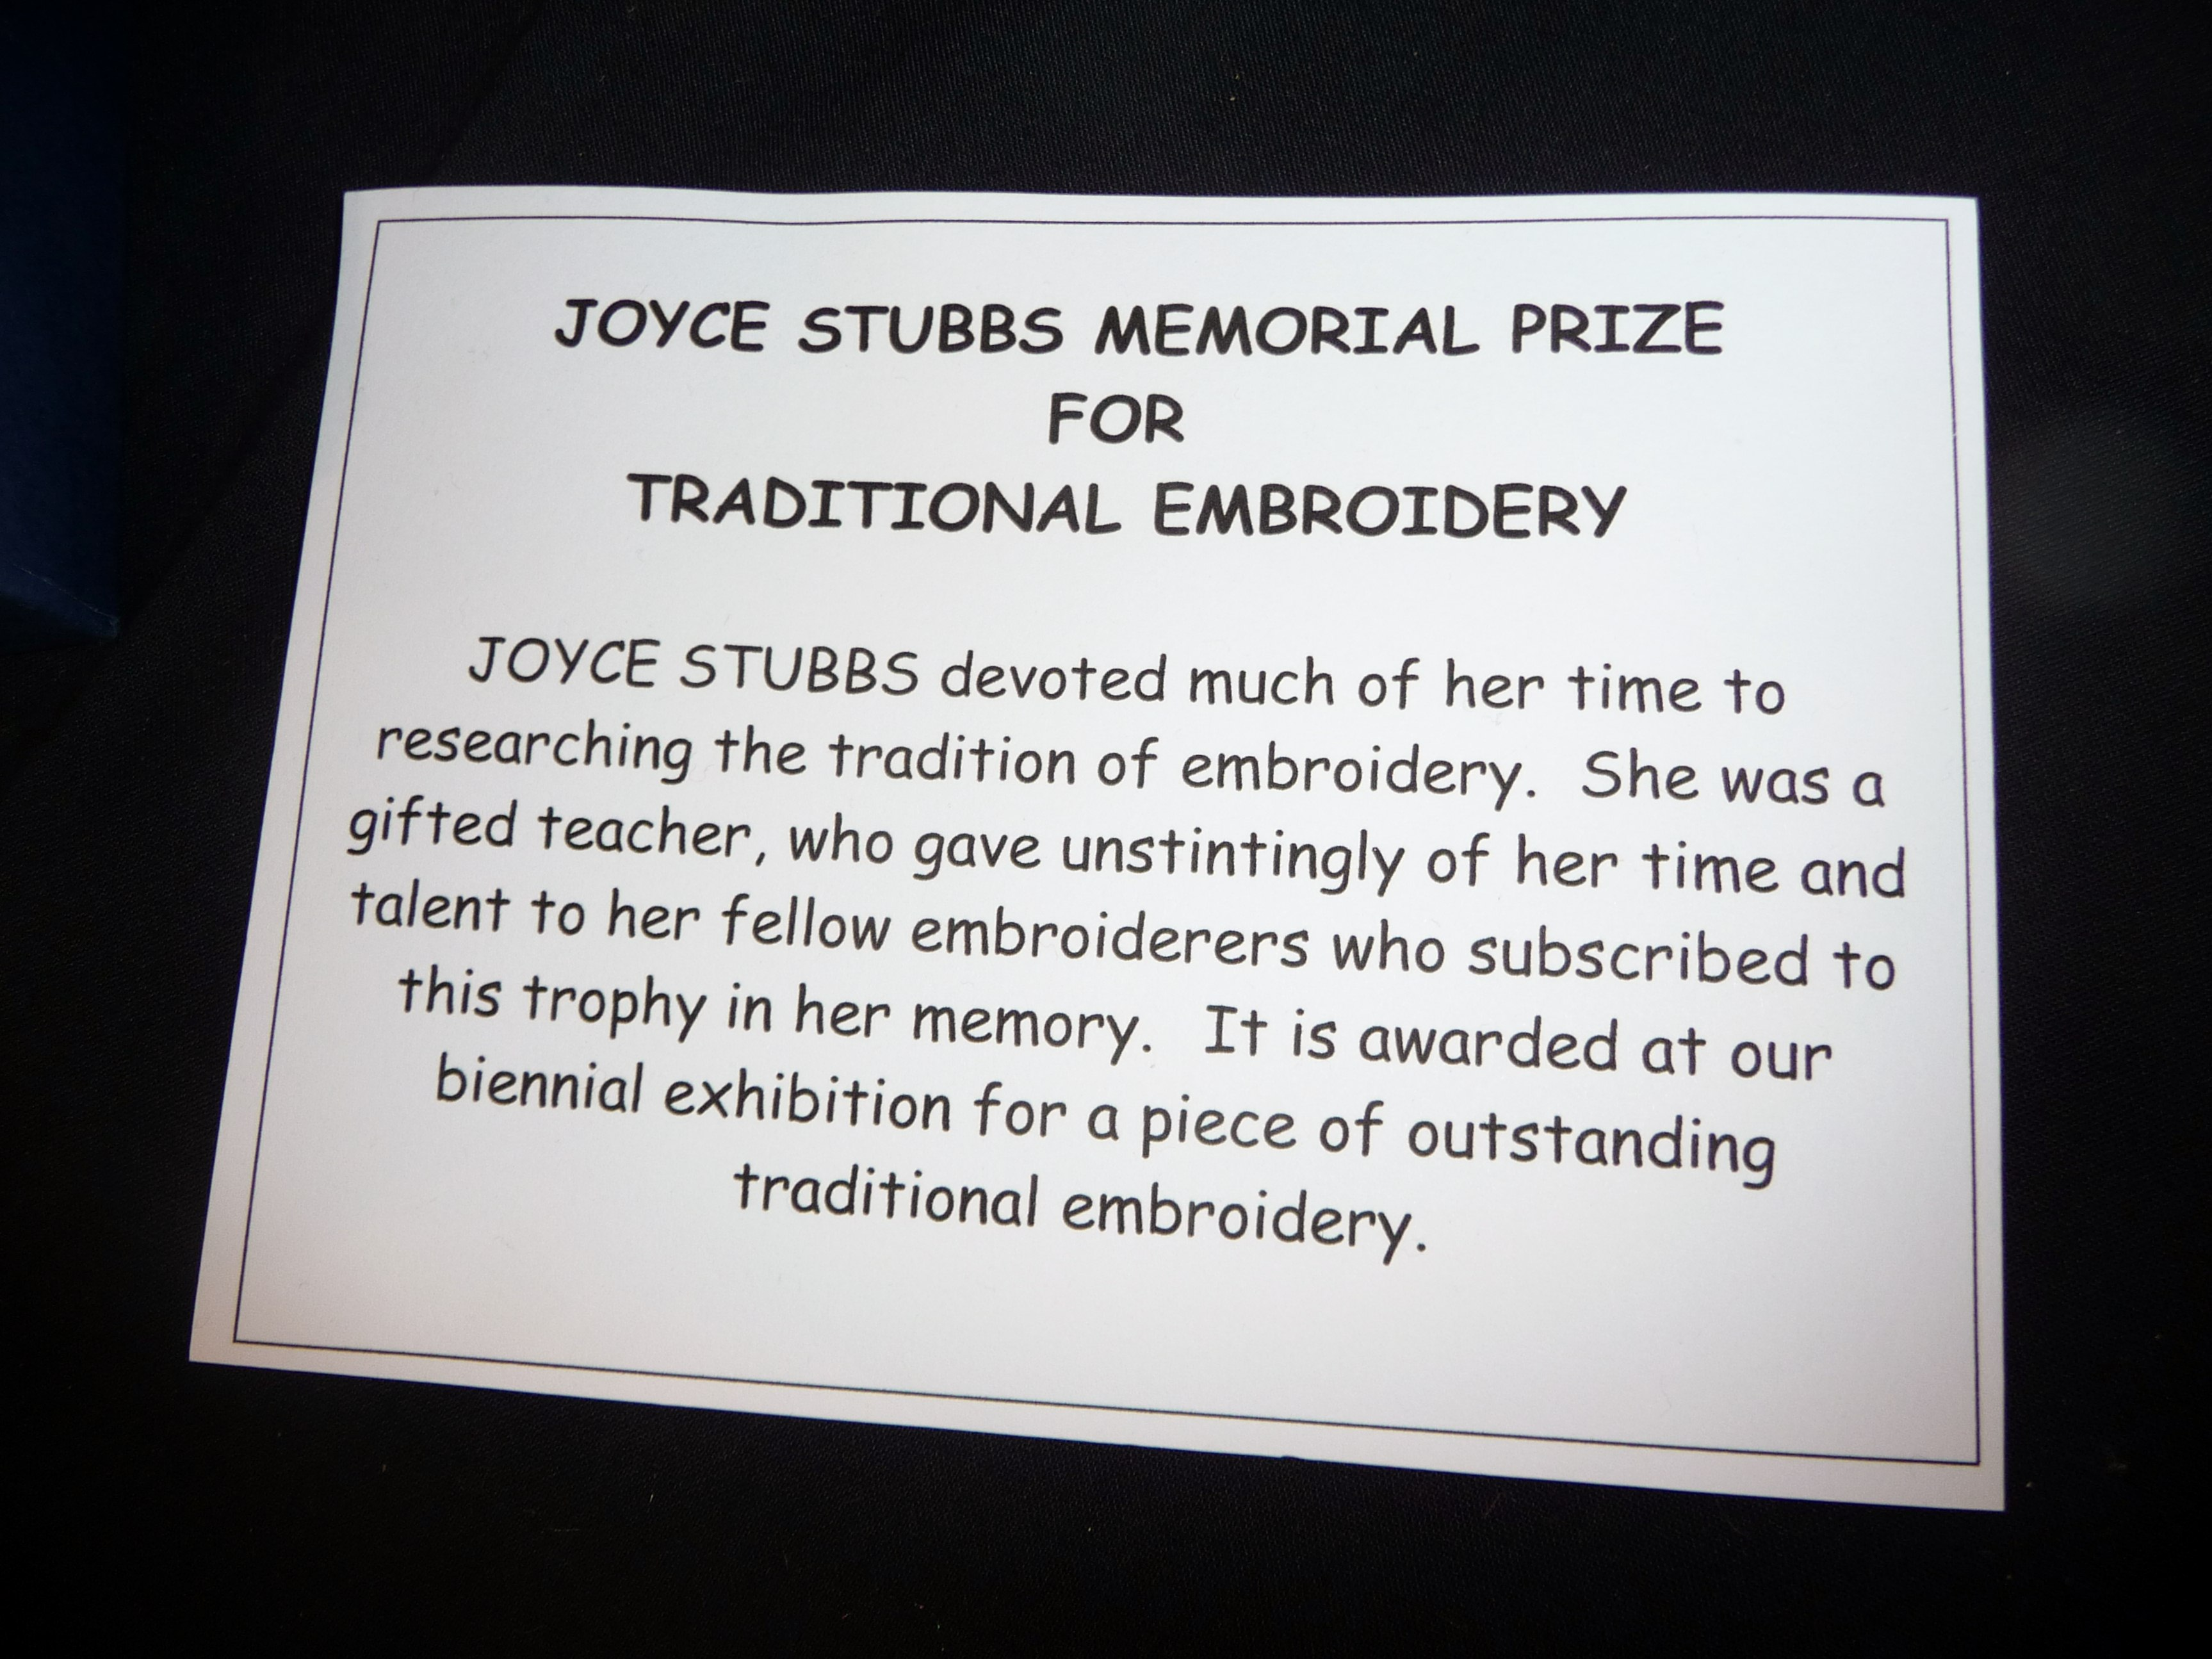 JOYCE STUBBS MEMORIAL PRIZE FOR TRADITIONAL EMBROIDERY